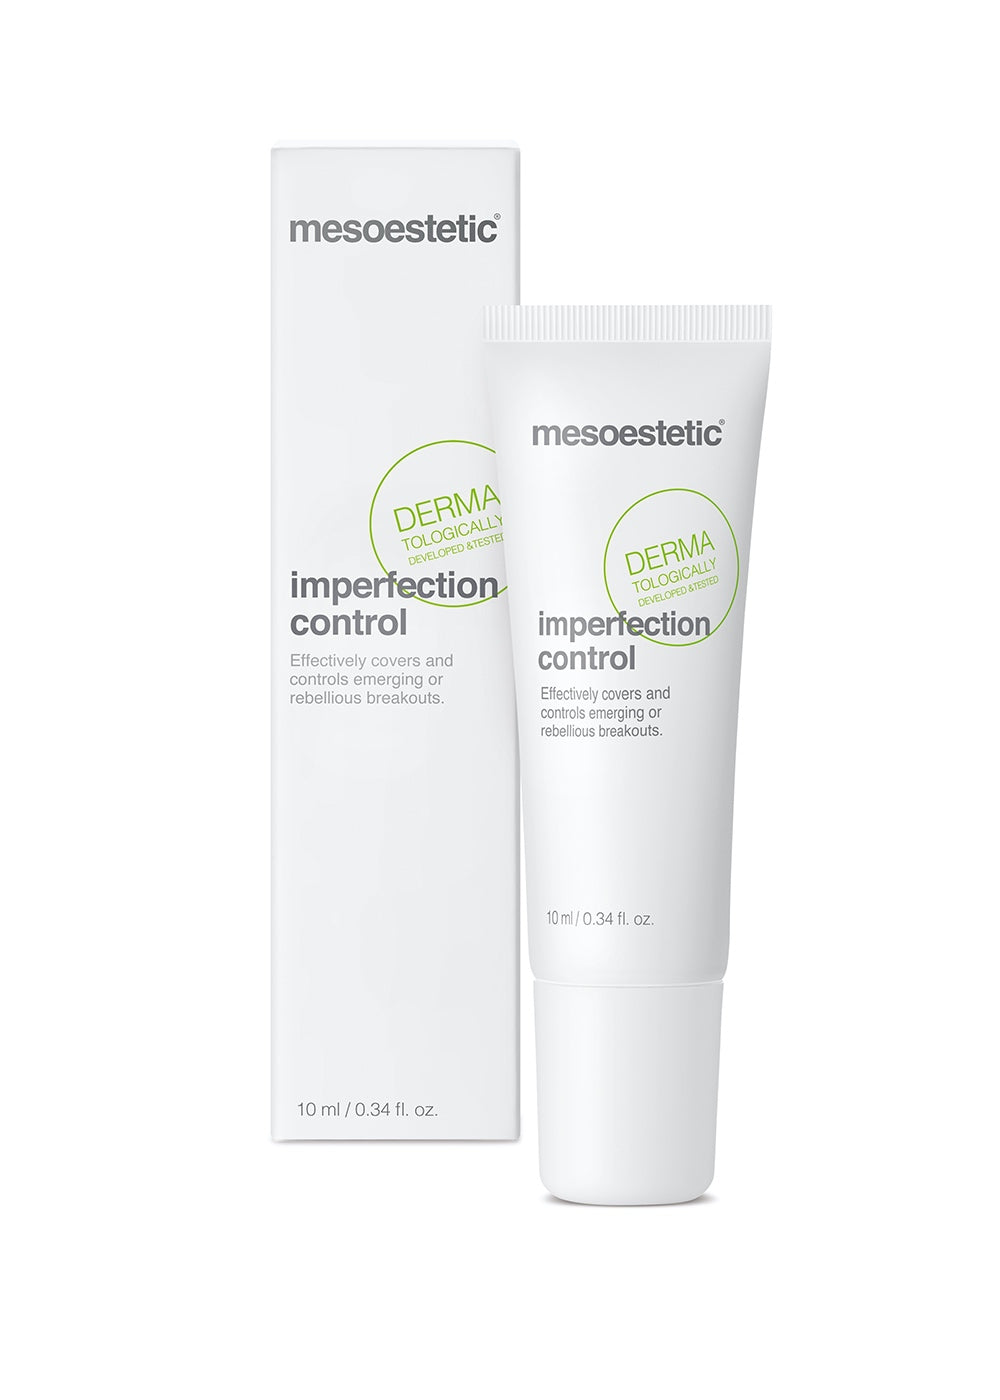 Mesoestetic Acne Line Imperfection Control